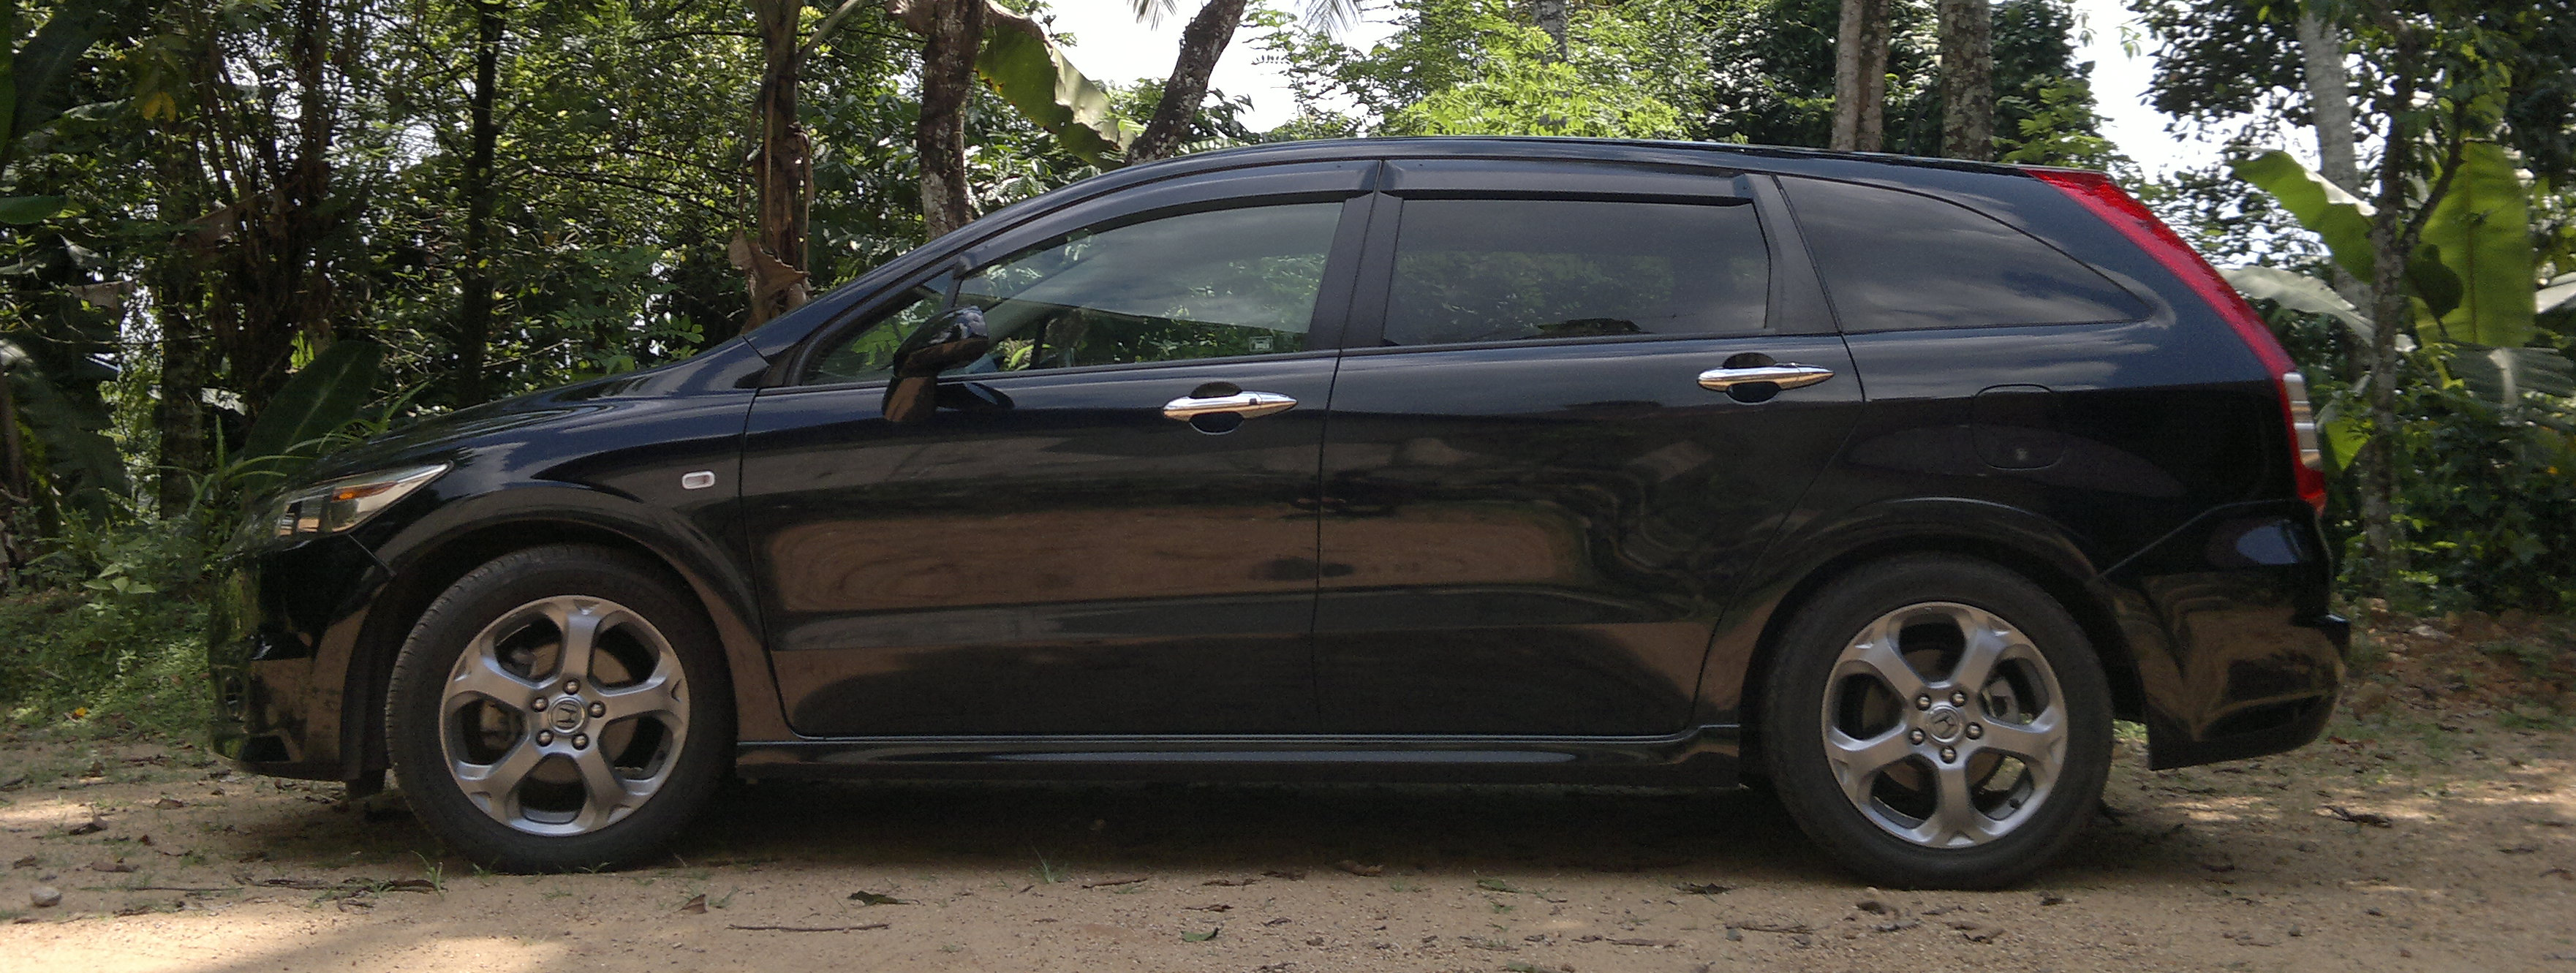 Honda Stream RSZ review RN6 1.8 | Rayaz on cars, mobile ...